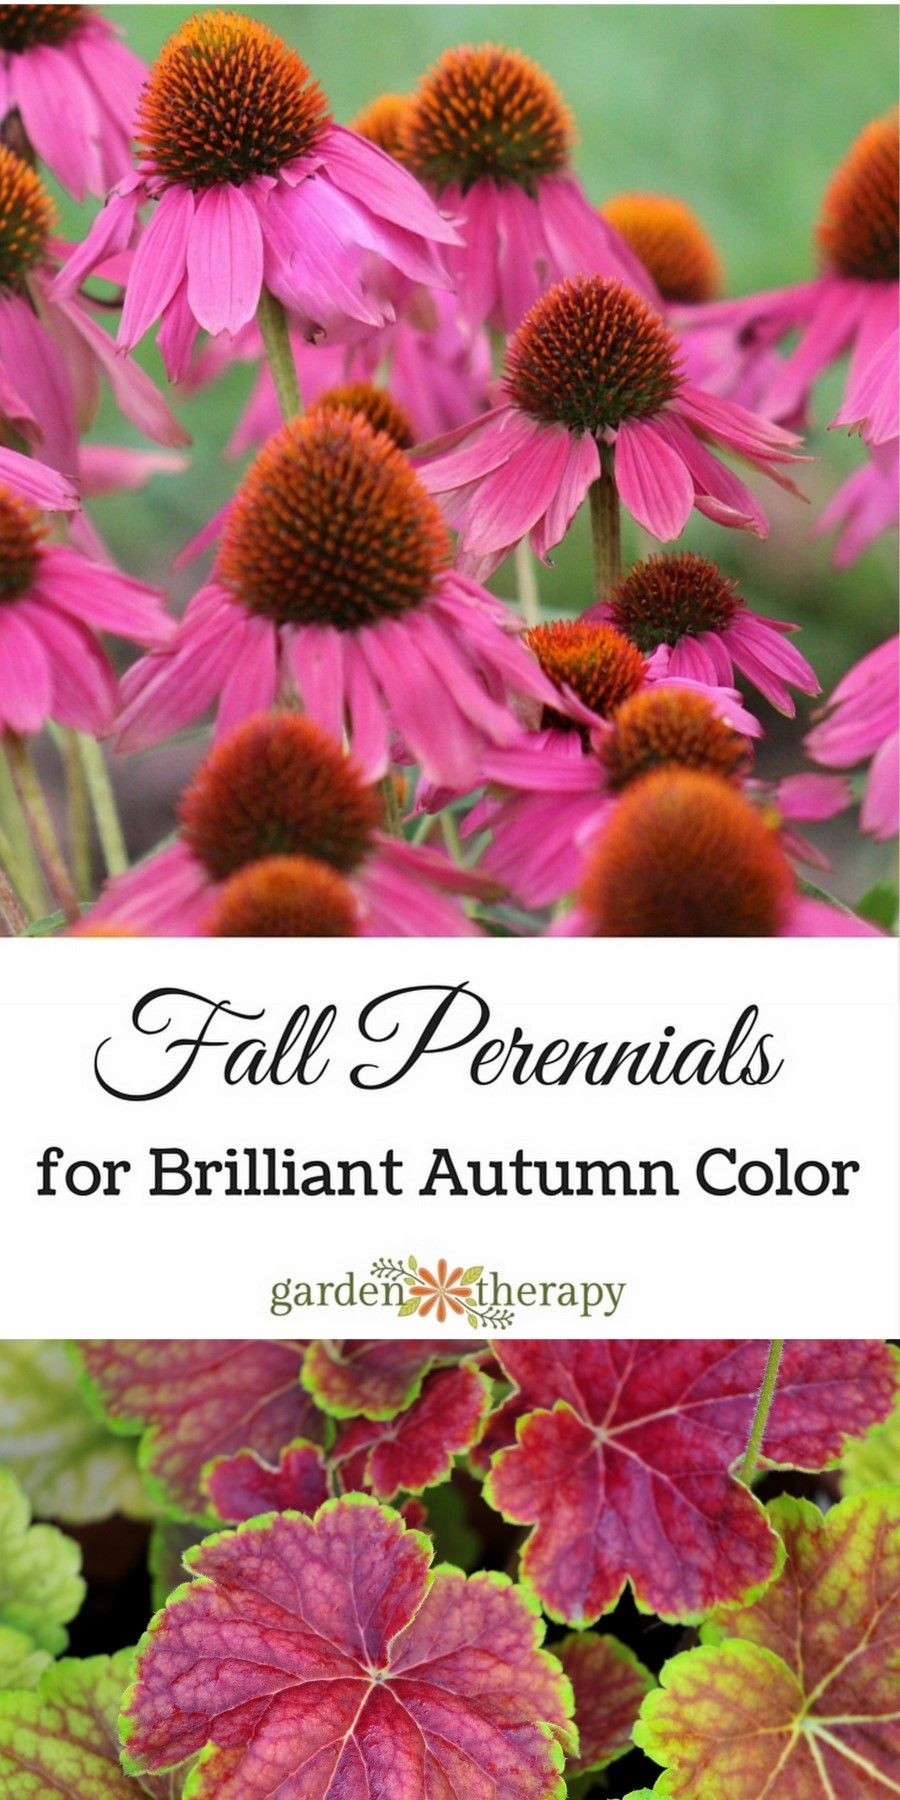 Grow These Fall Perennials For Brilliant Autumn Color Ky Native